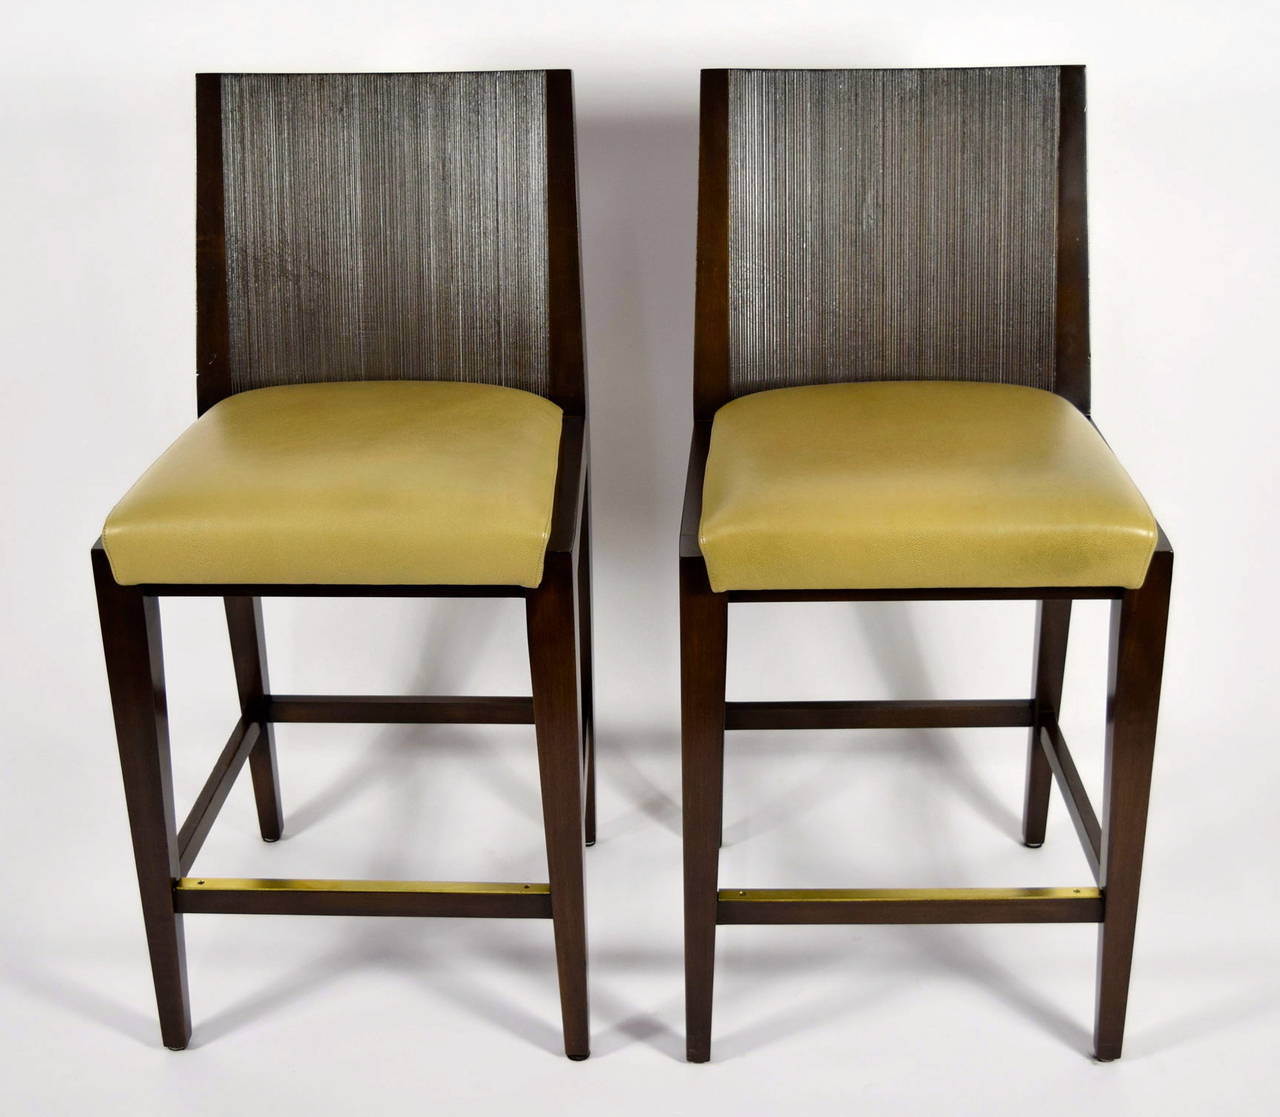 A beautiful pair of barstools by Axis. Kenya - tight seat with dark wood stained combed wood back, metal plate on footrest. Upholstered in great plains leather